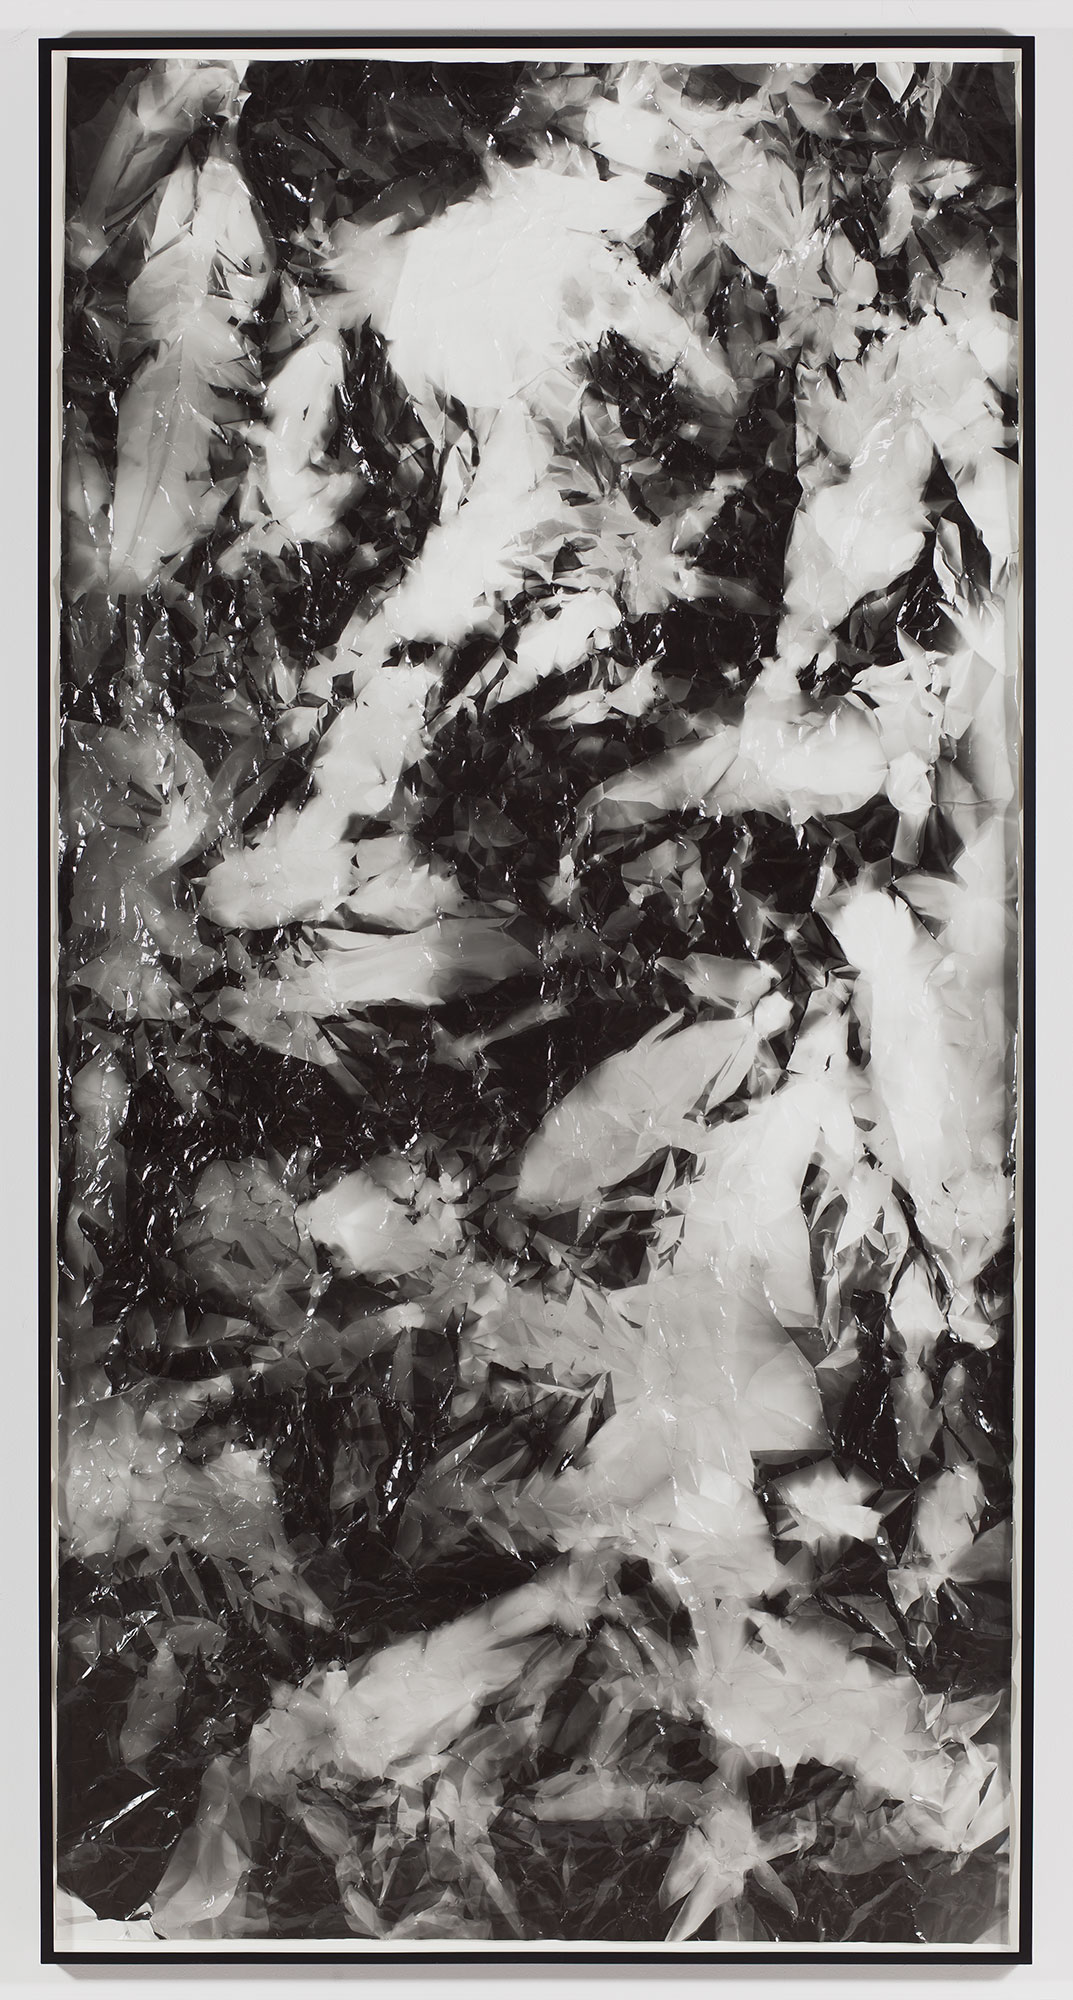 Picture Made by My Hand with the Assistance of Light    2011   Black and white fiber based photographic paper  111 x 55 inches